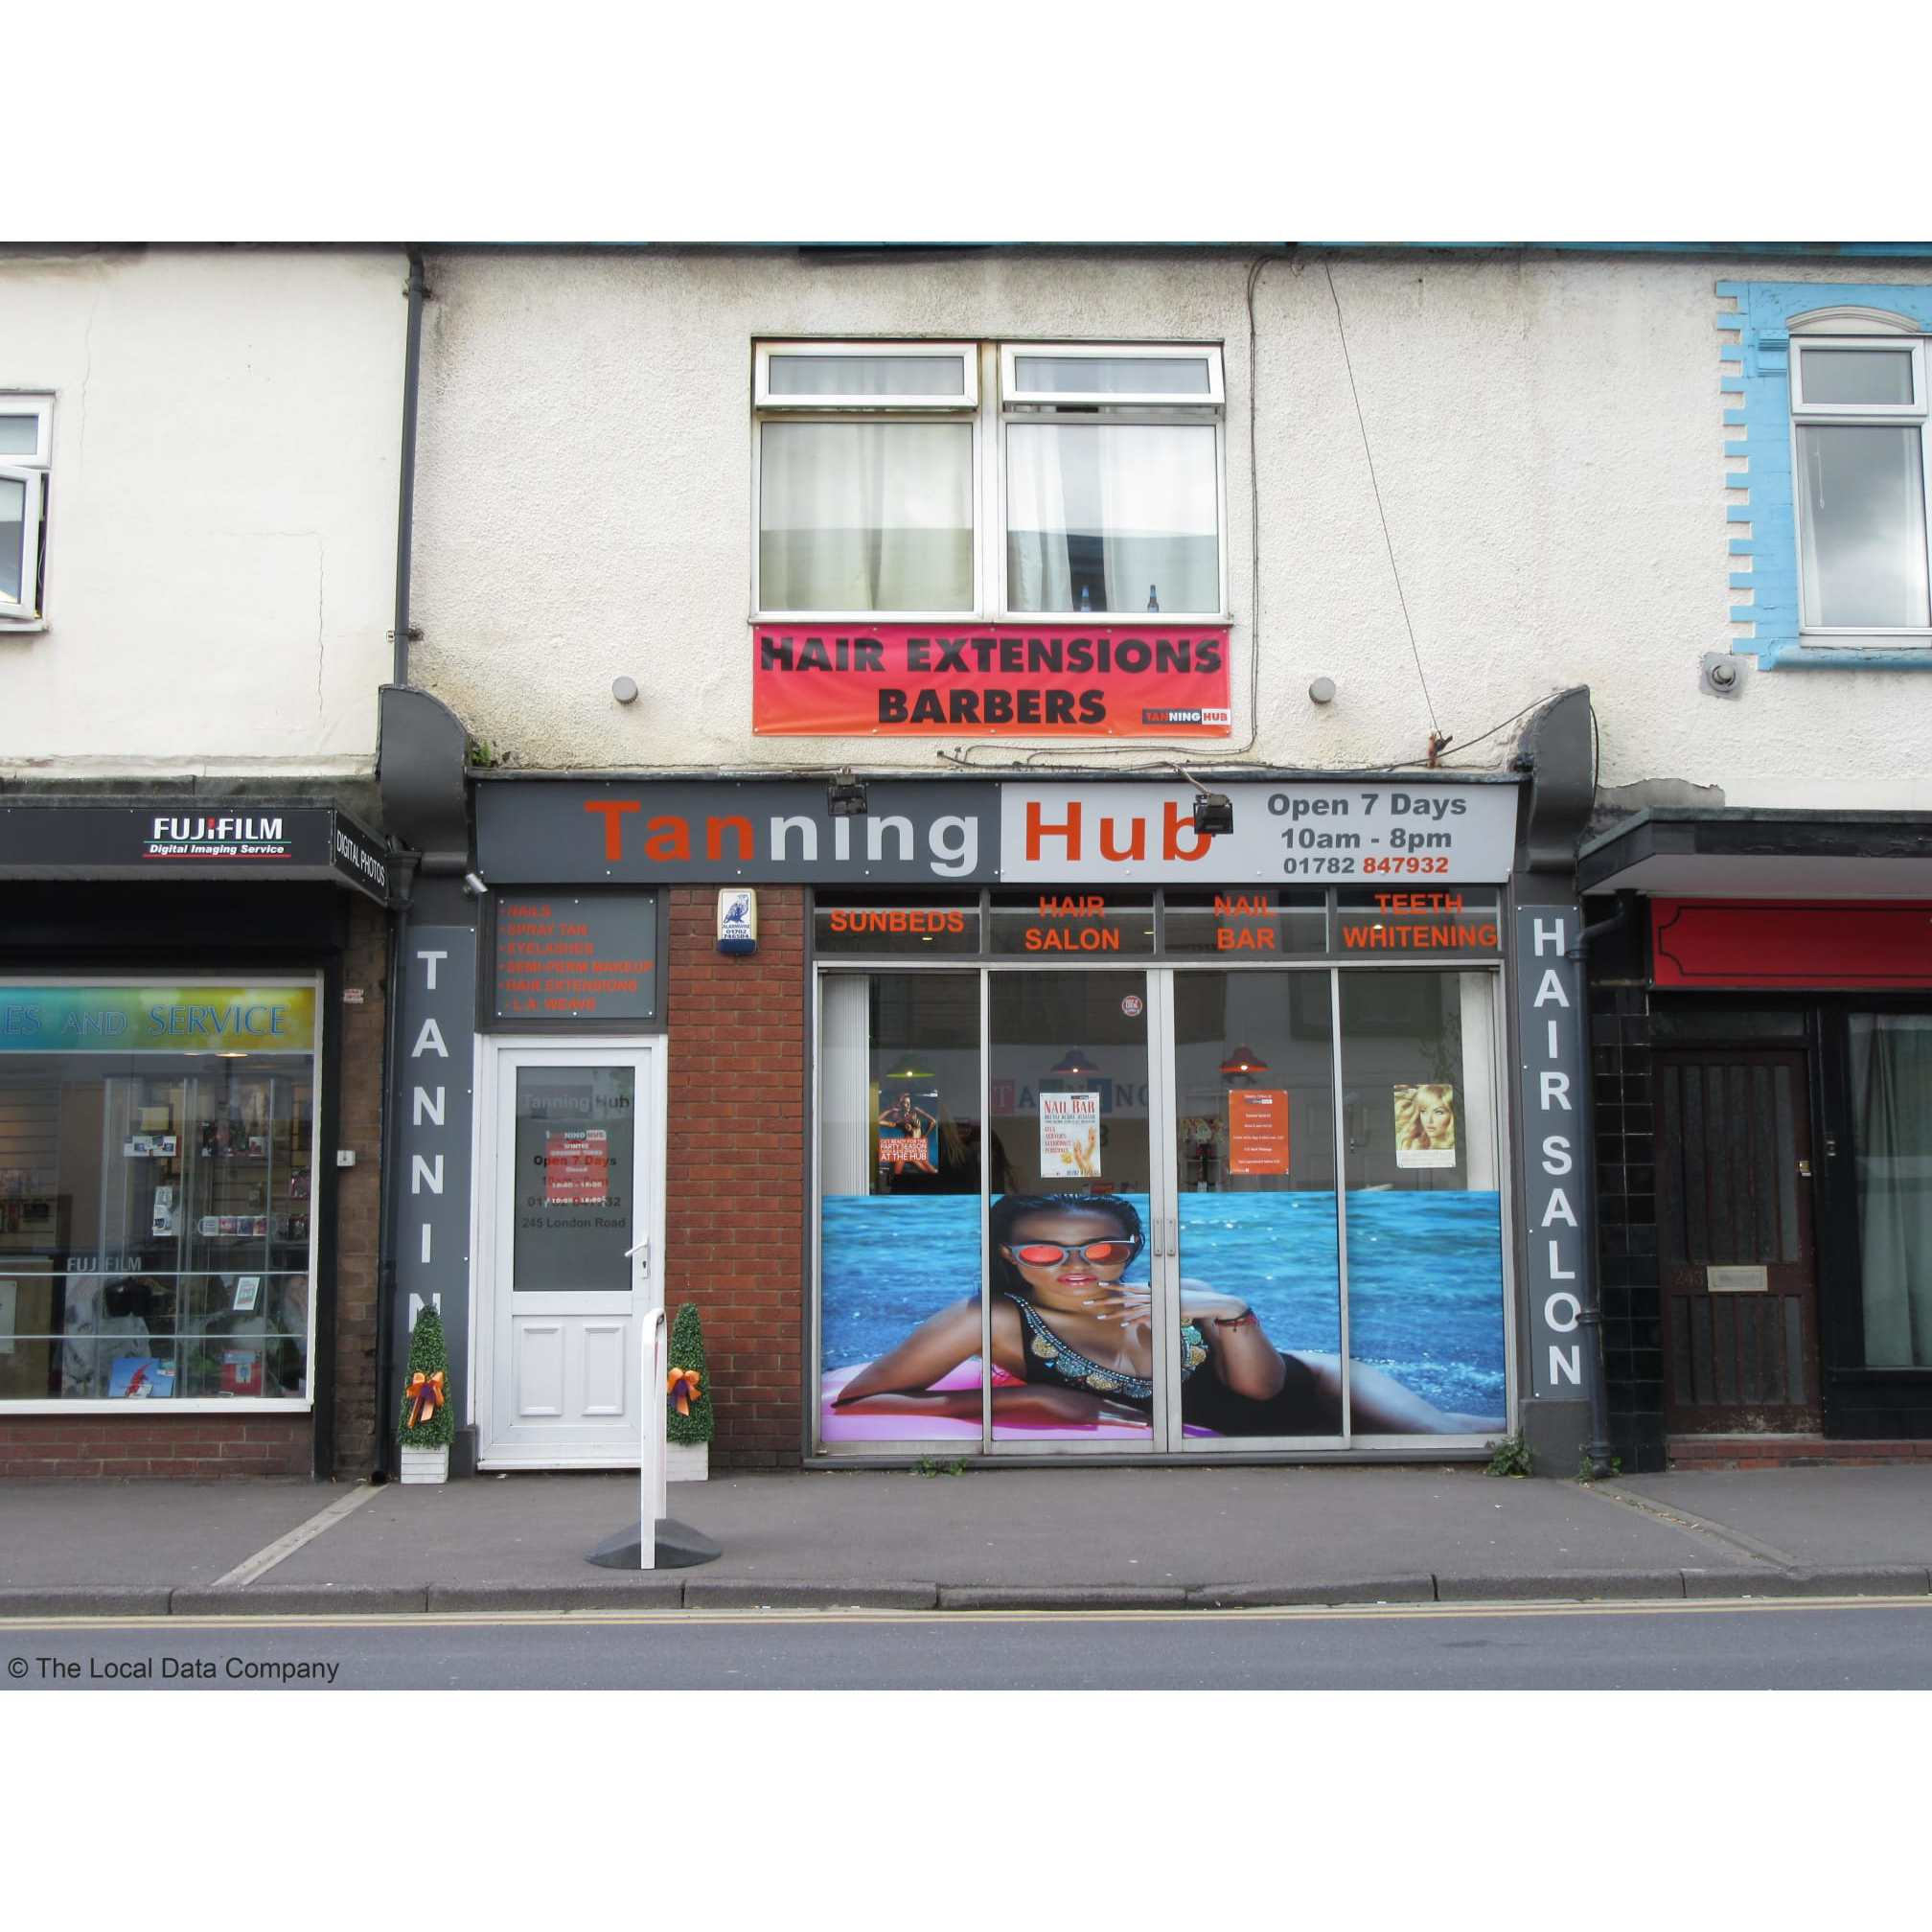 London Road Tattoos & Tanning - Stoke-On-Trent, Staffordshire ST4 5AA - 01782 847932 | ShowMeLocal.com